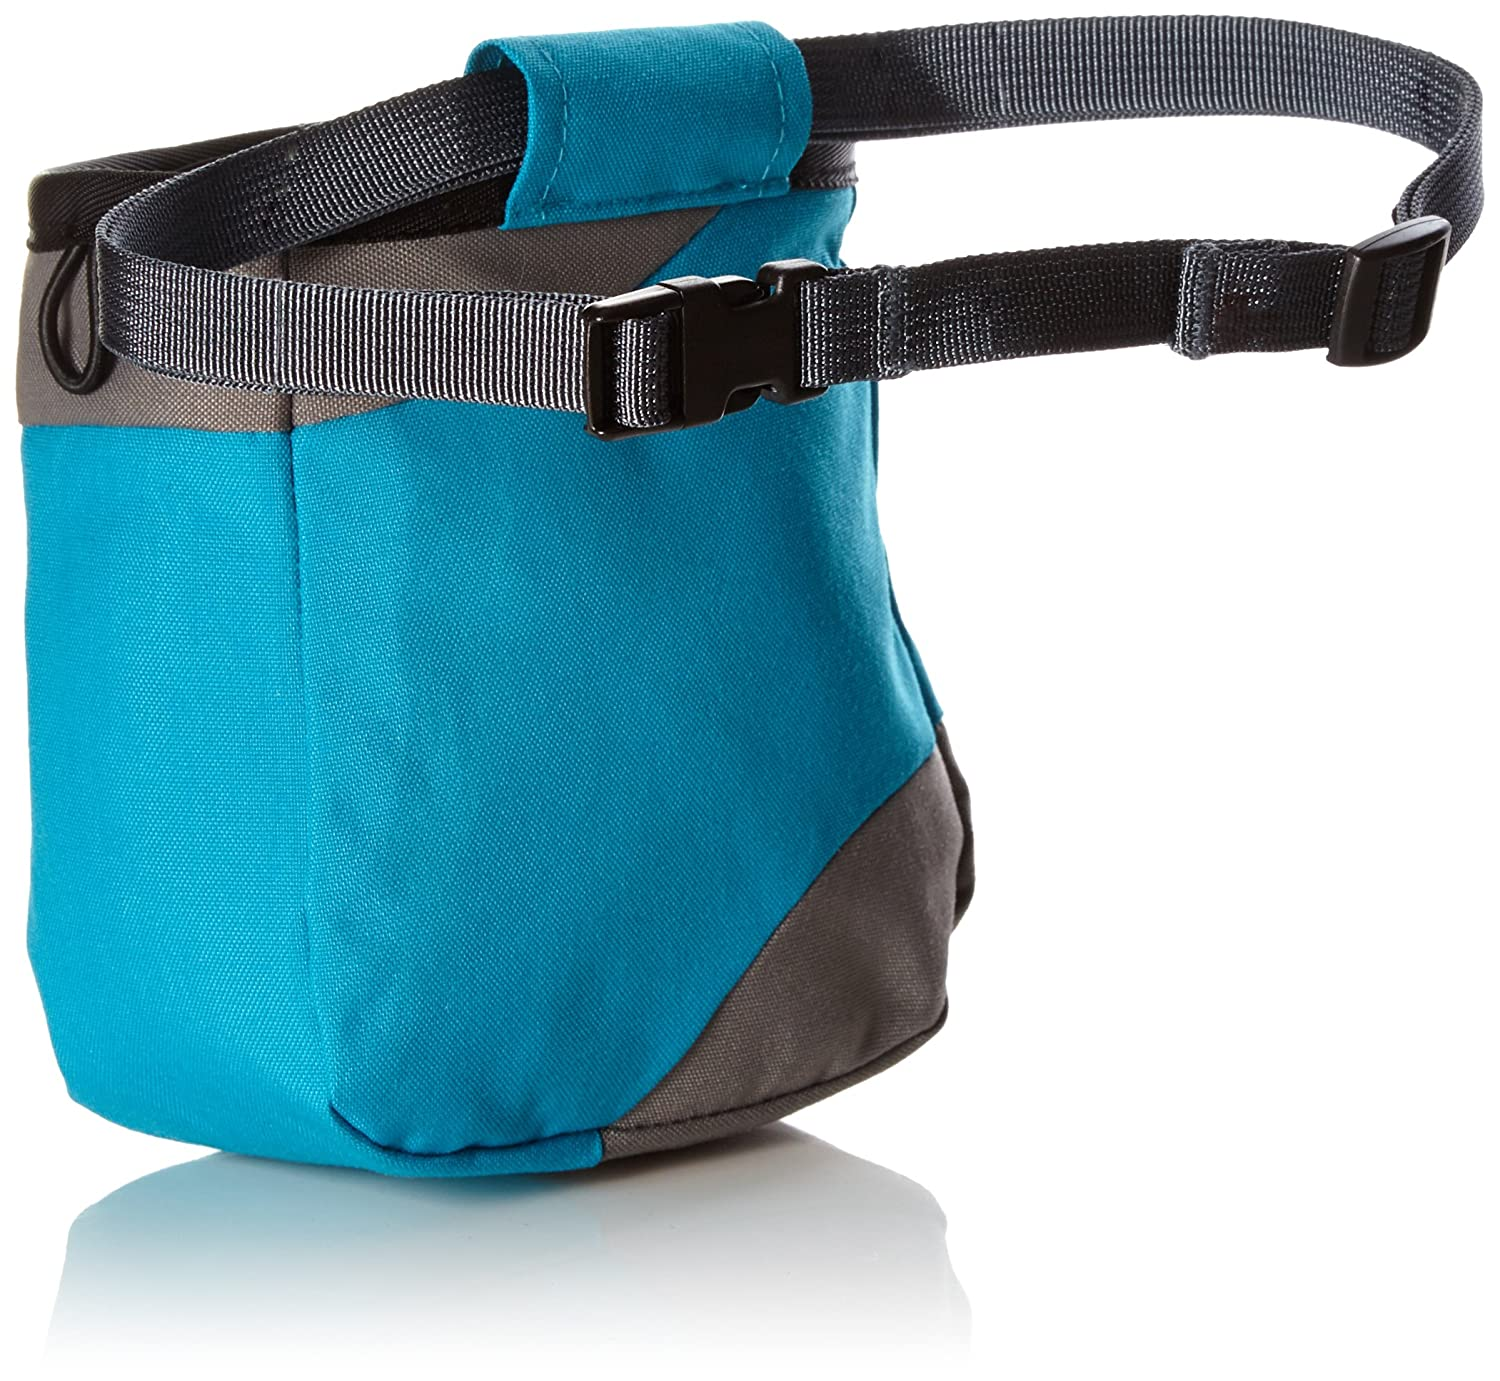 Wildcountry - Wild Country - Sac a Magnesie - Dipper Chalk Bag Gris: Amazon.es: Deportes y aire libre